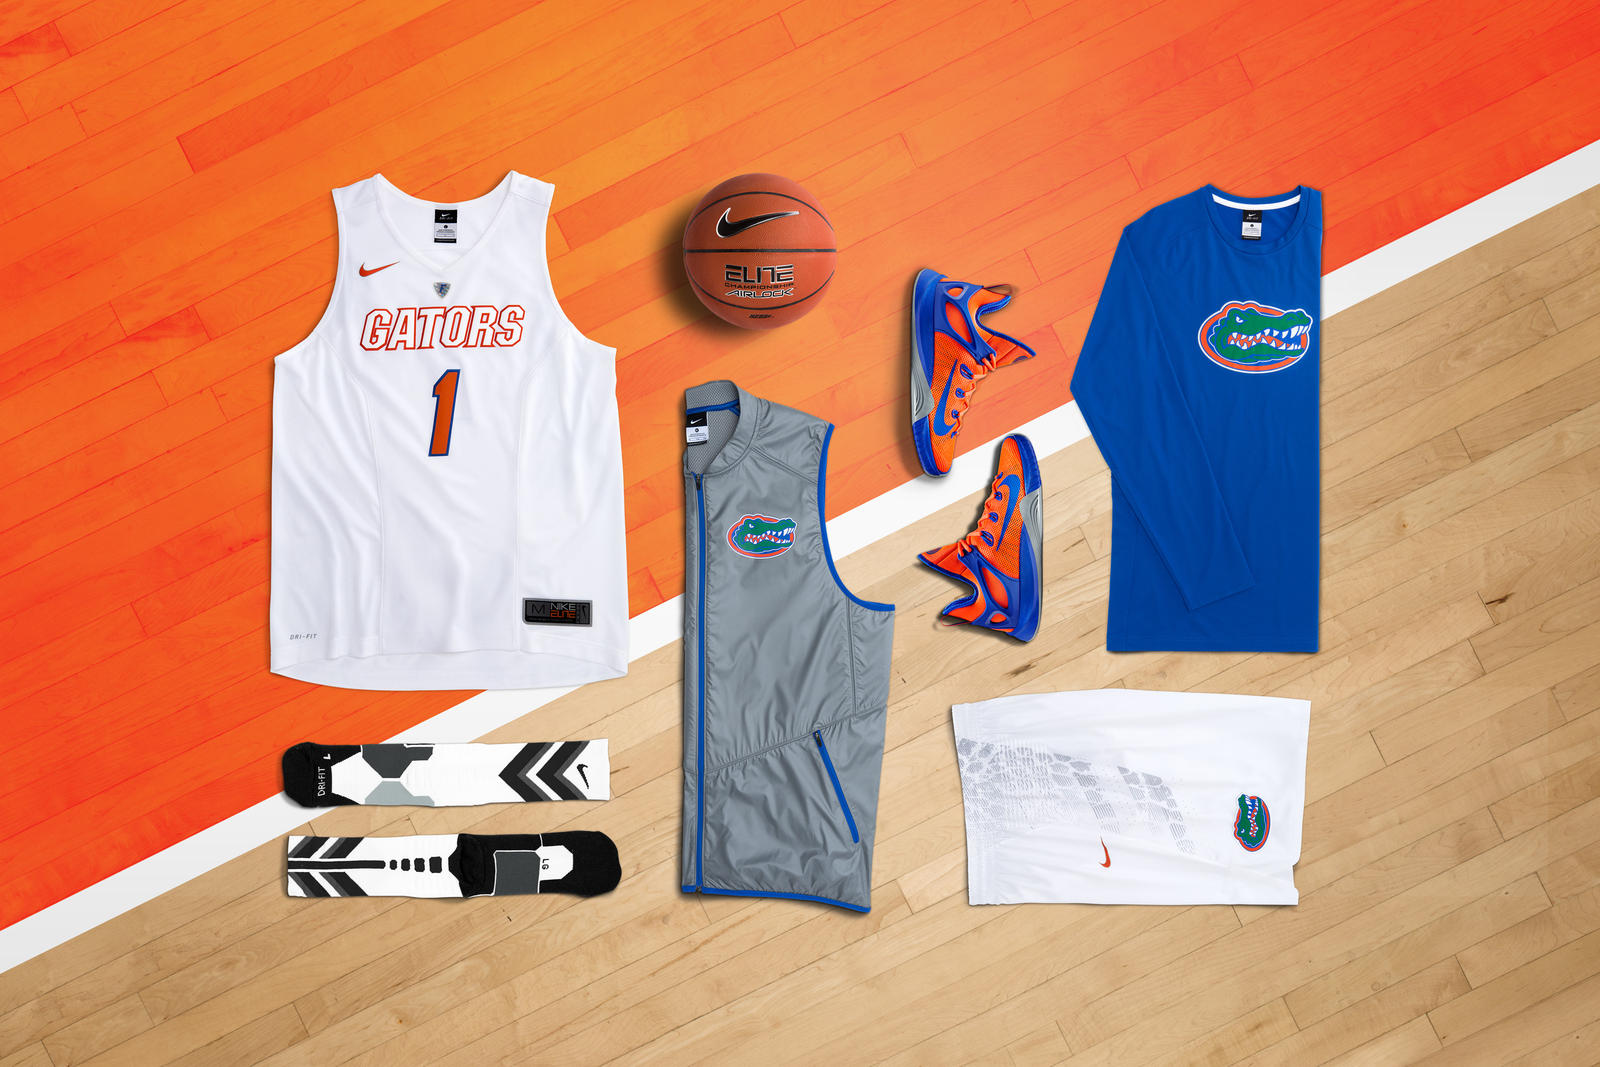 1Nike Hyper Elite Florida laydown